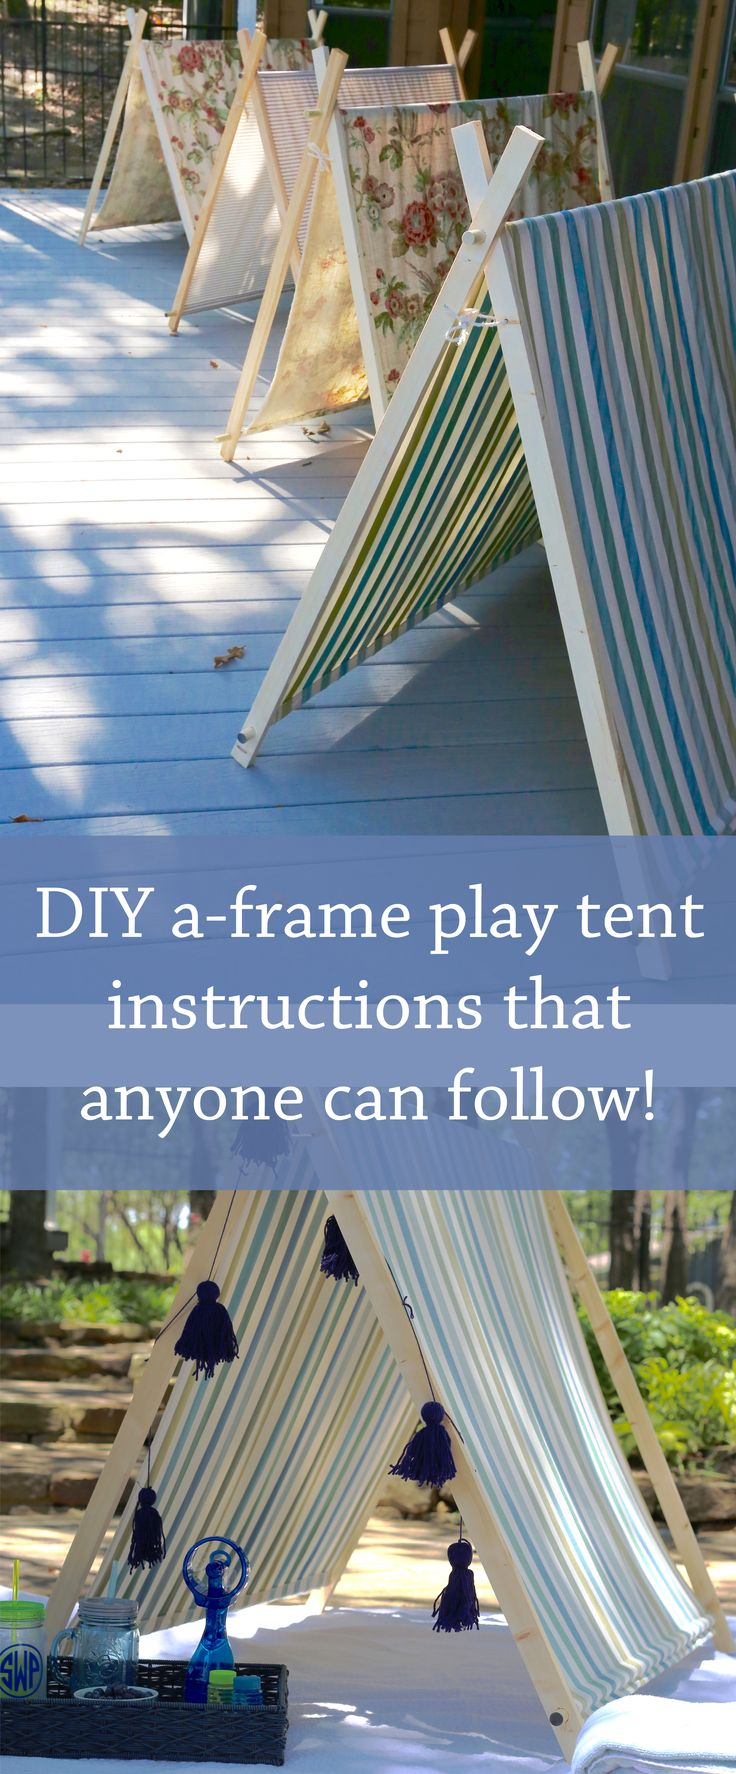 DIY a-frame play tent instructions from weestyleguide.com